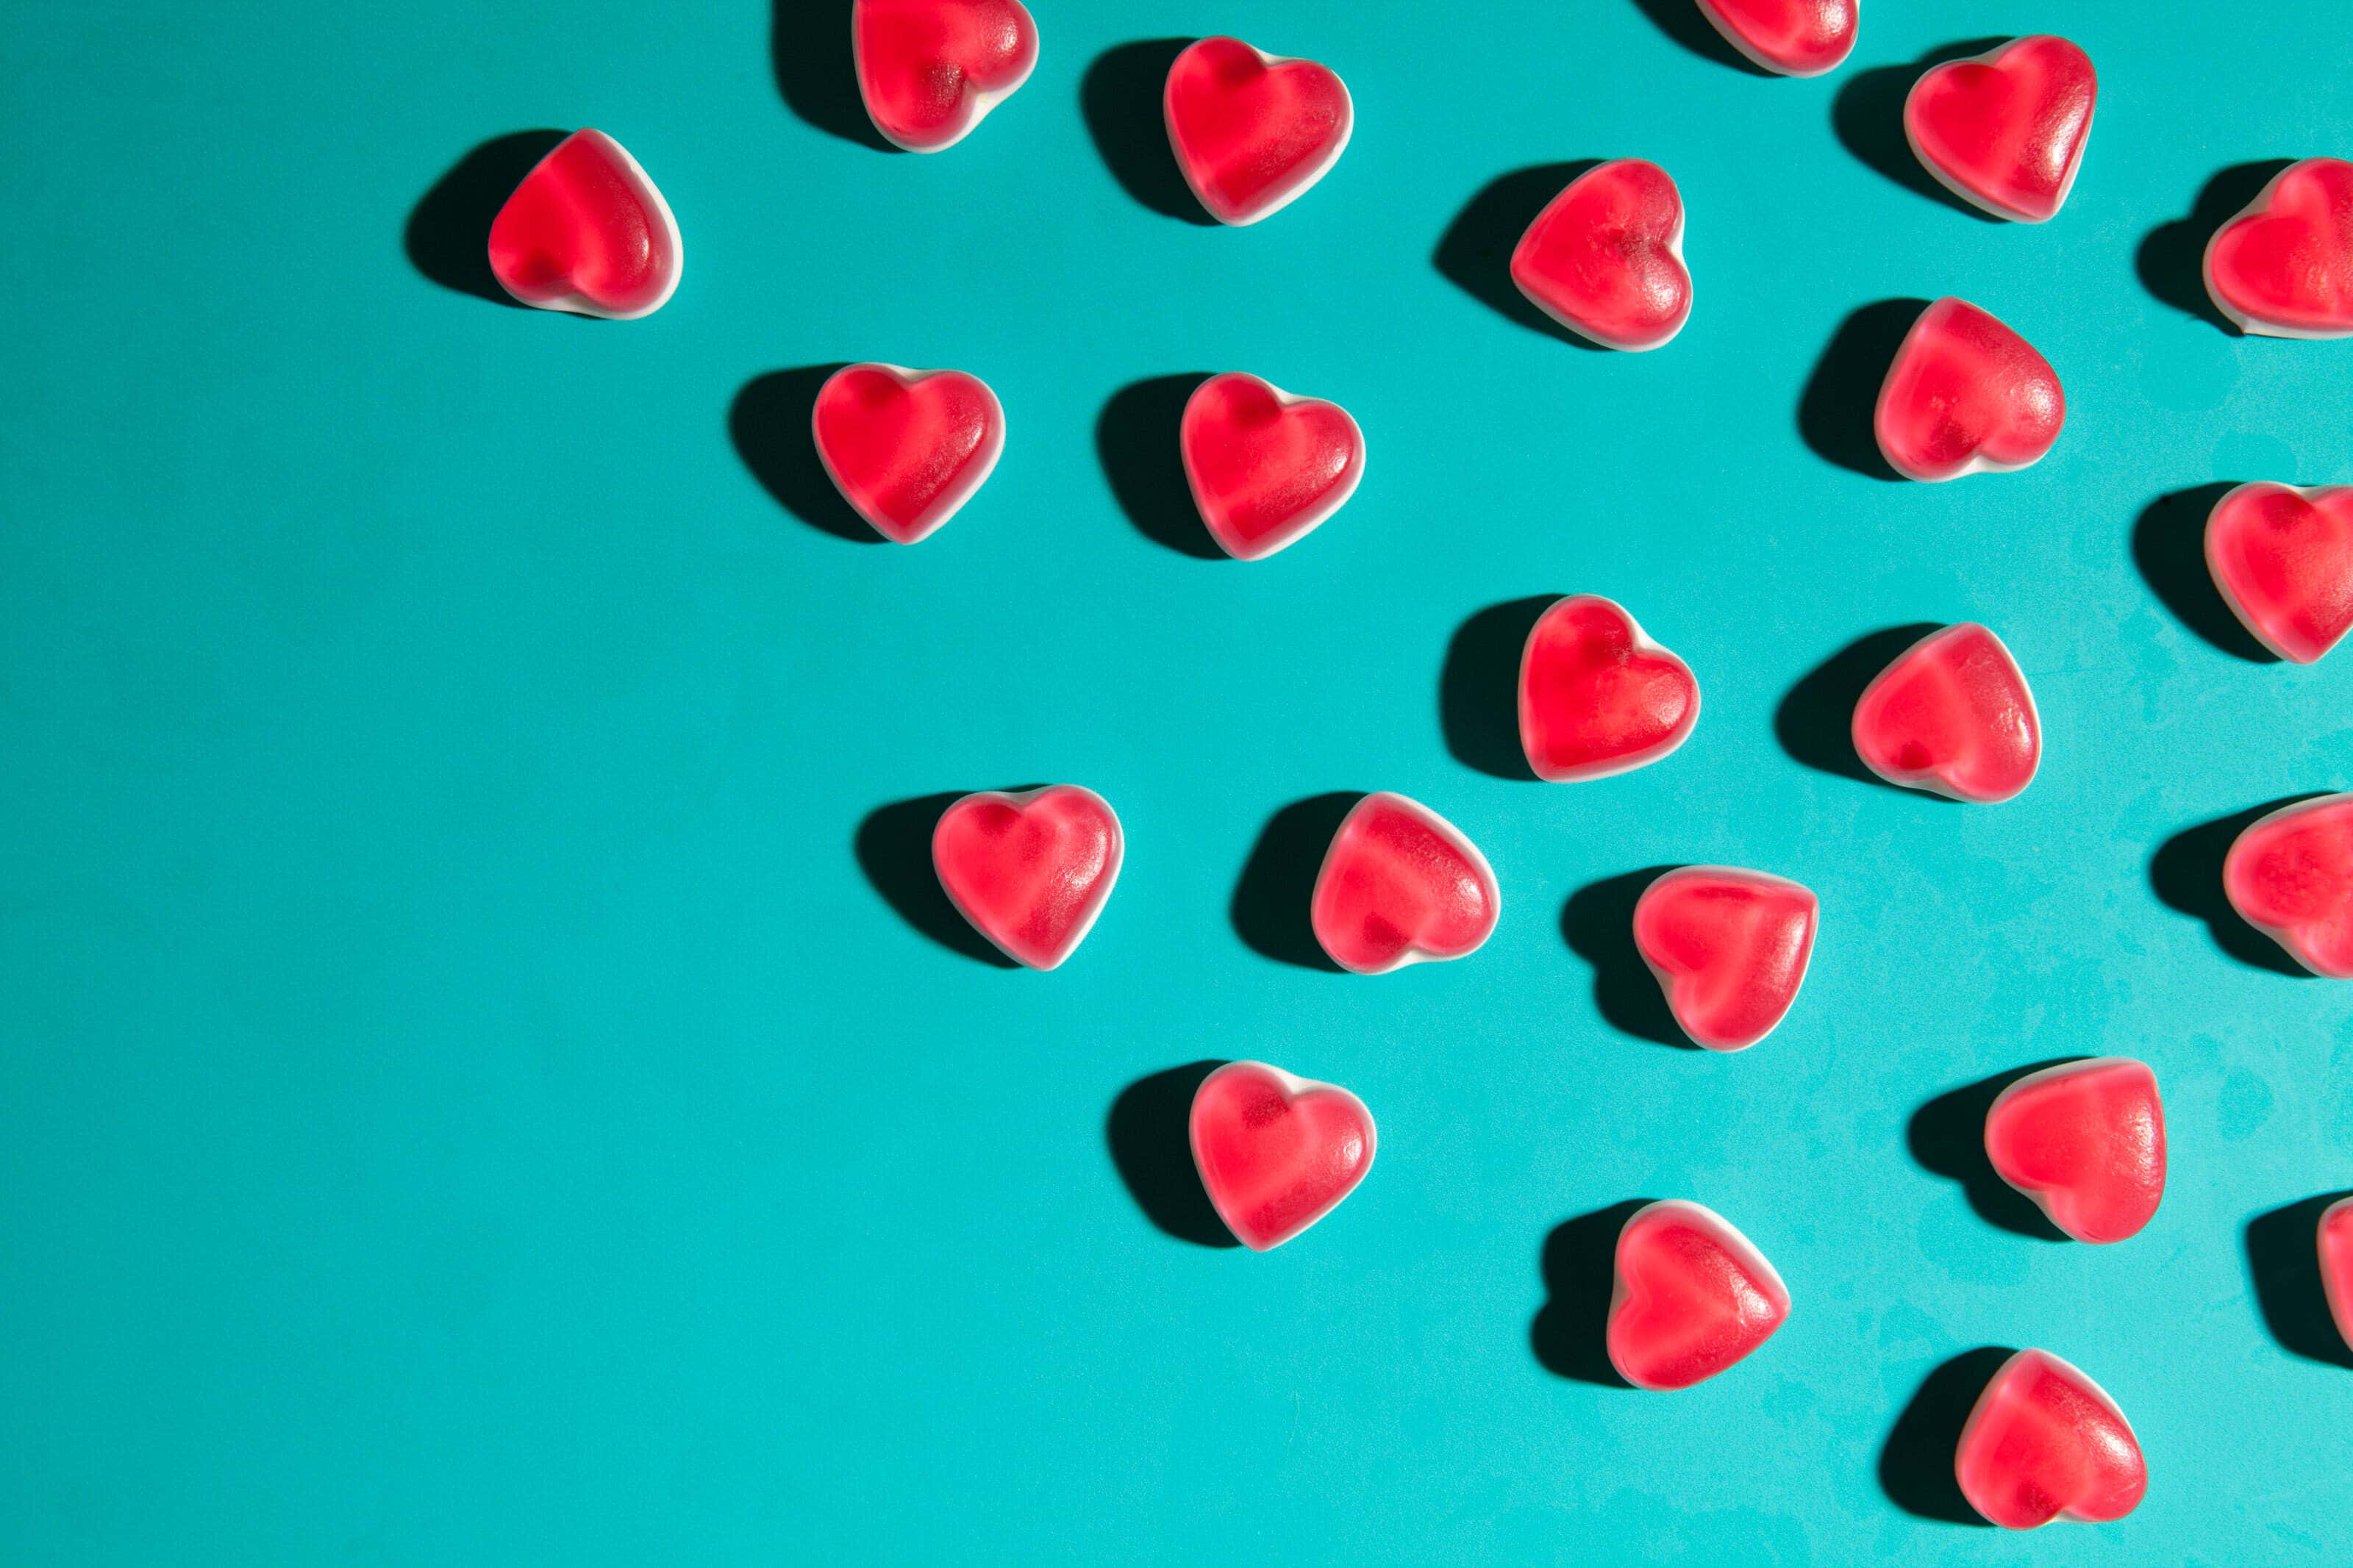 Love heart Haribo sweets photographed from above on a turqoise background with hard shadows for a pop art effect.